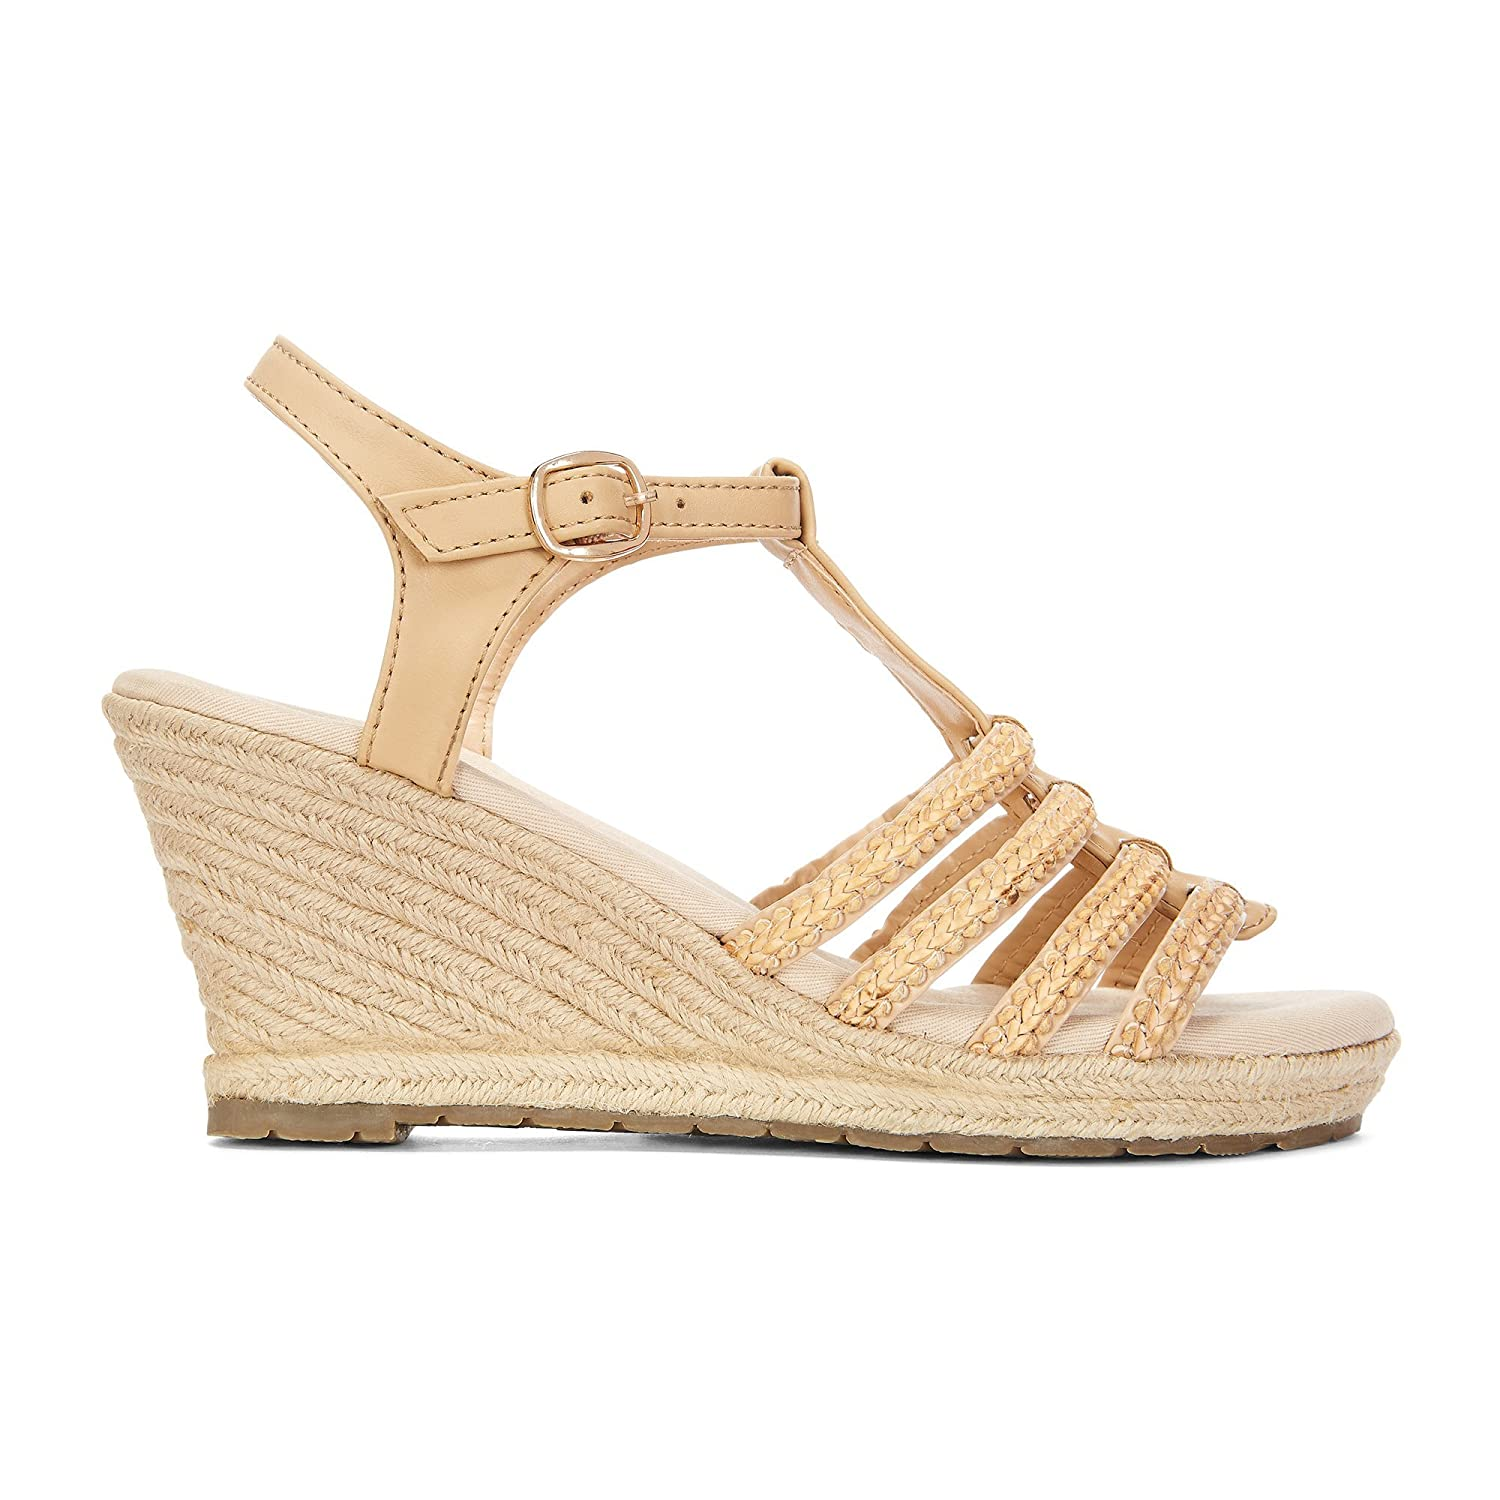 76461abf4bb Yellow Shoes GATO Womens Wedge Fashion Sandals - Casual   Comfortable -  Woven Made from Manmade